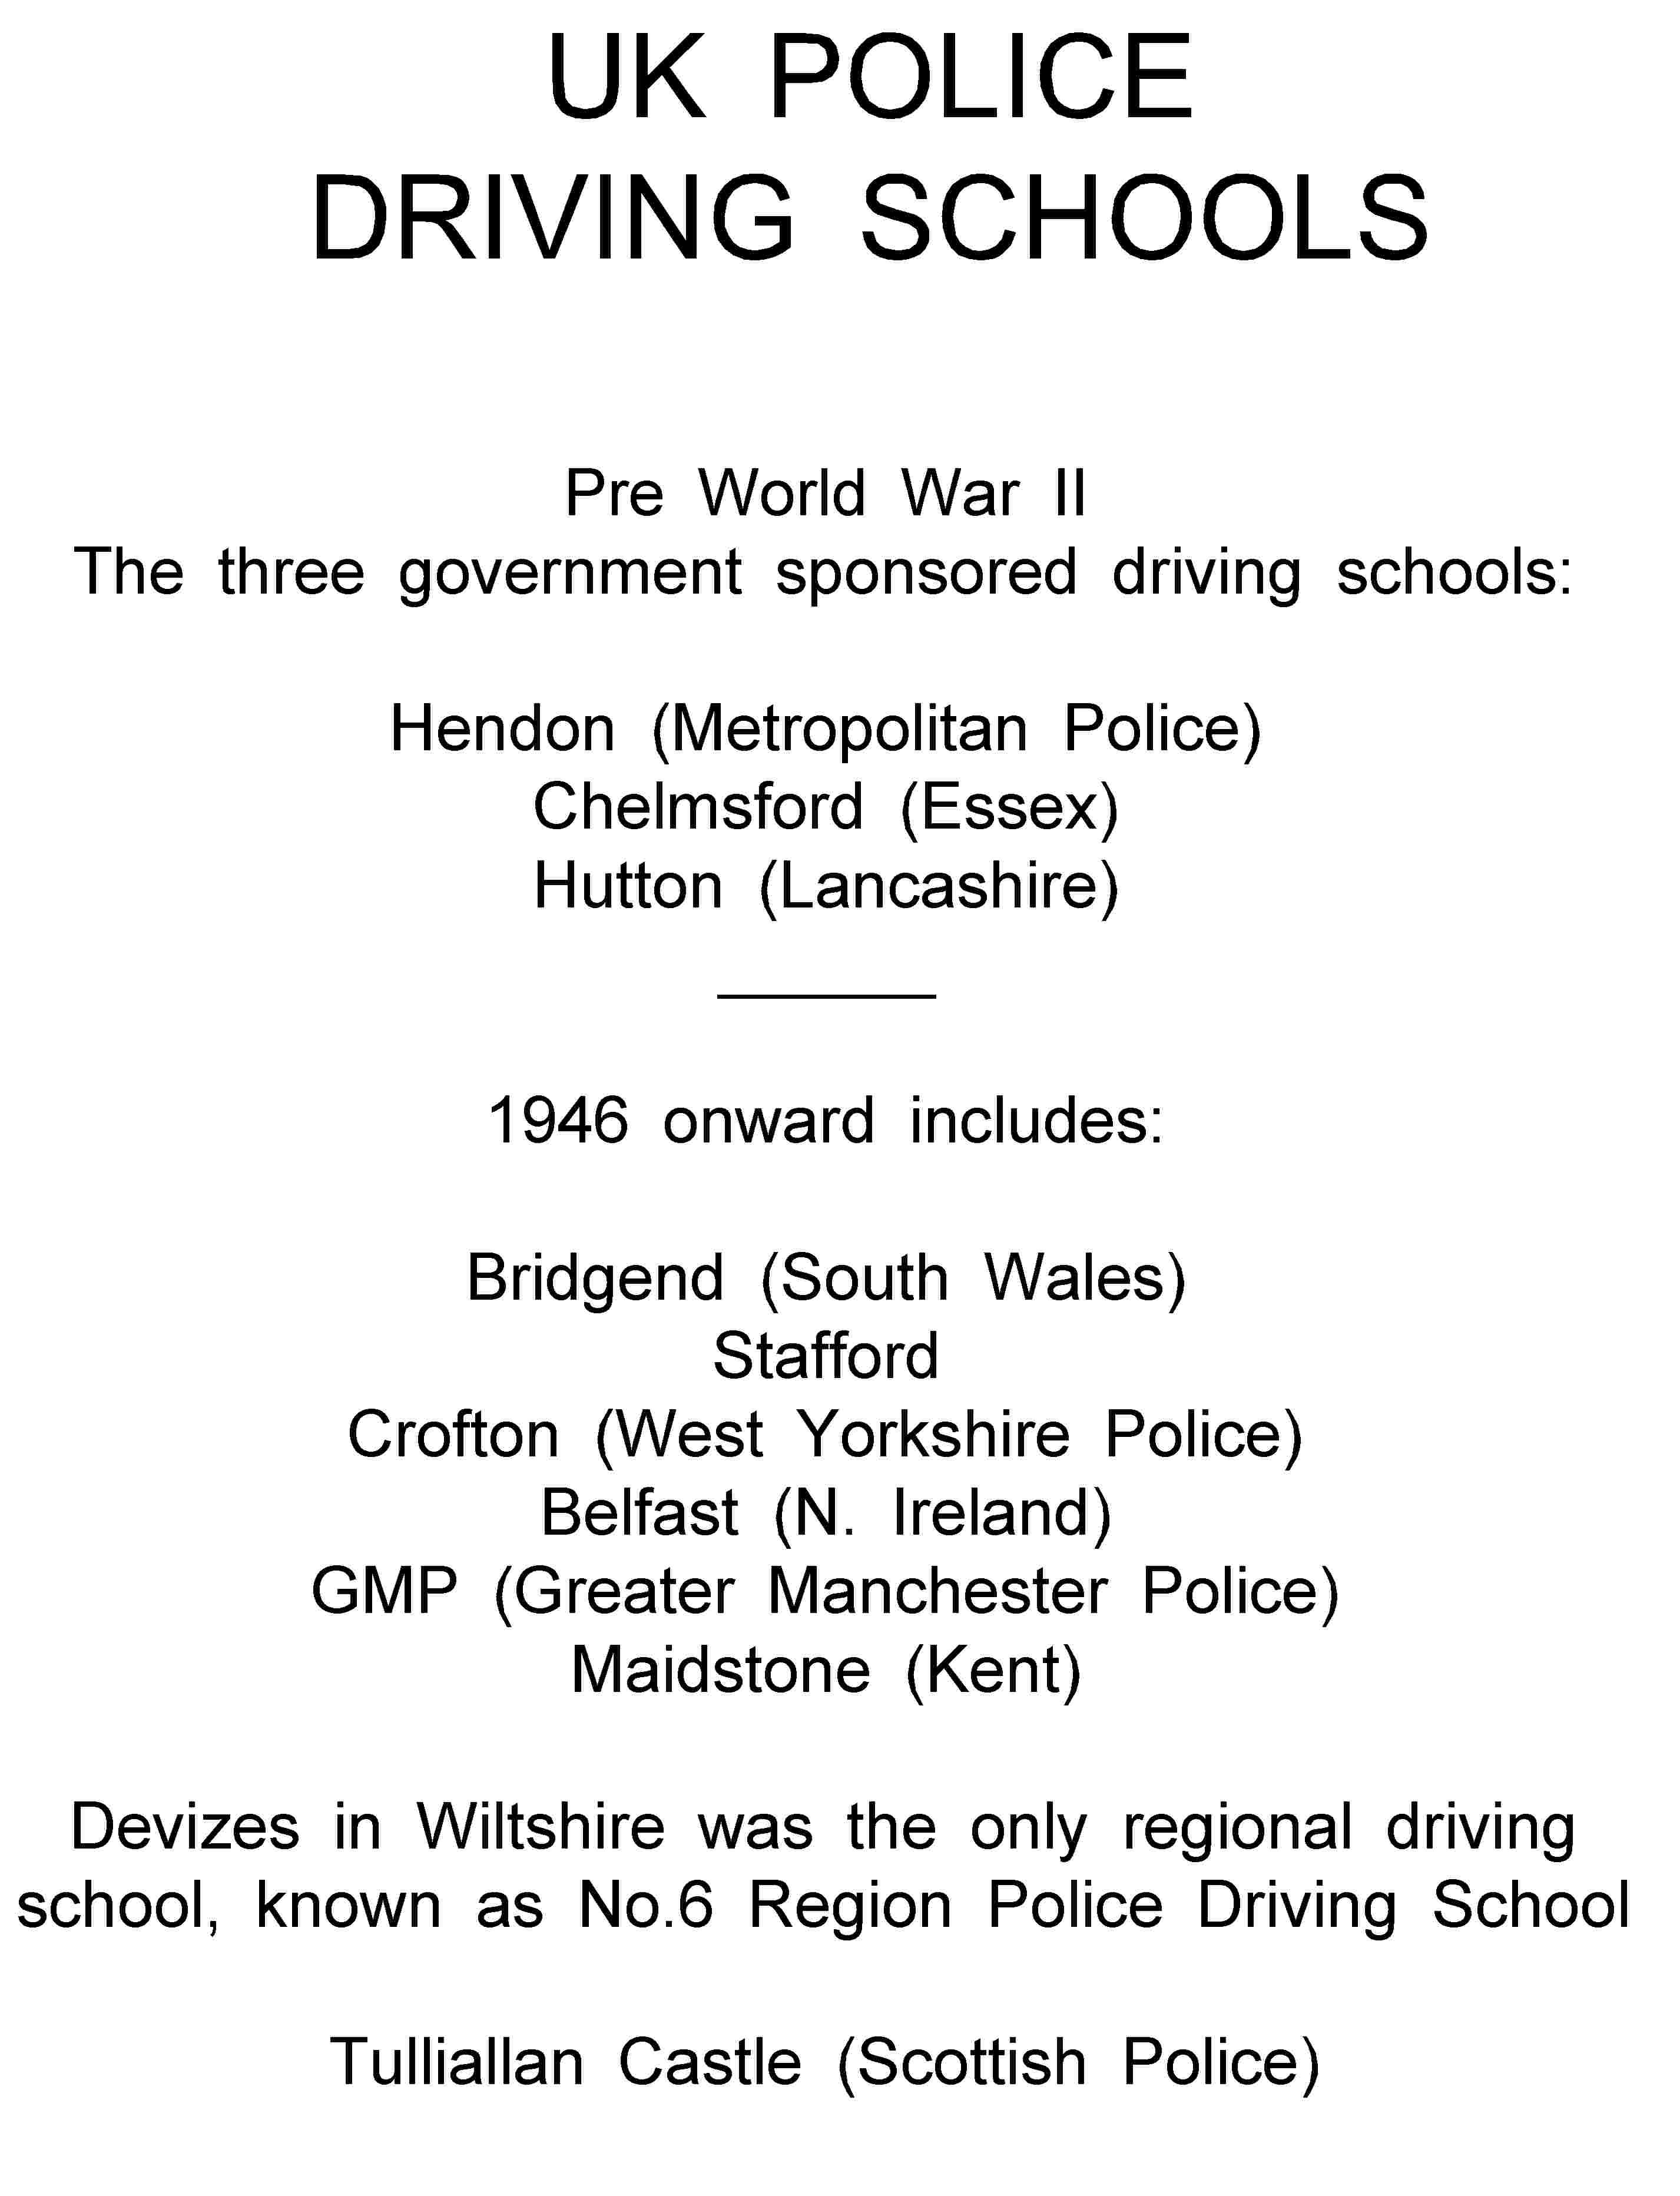 Pin By Nigel Albright On Police Driving Schools Manchester Police Advanced Driving West Yorkshire Police